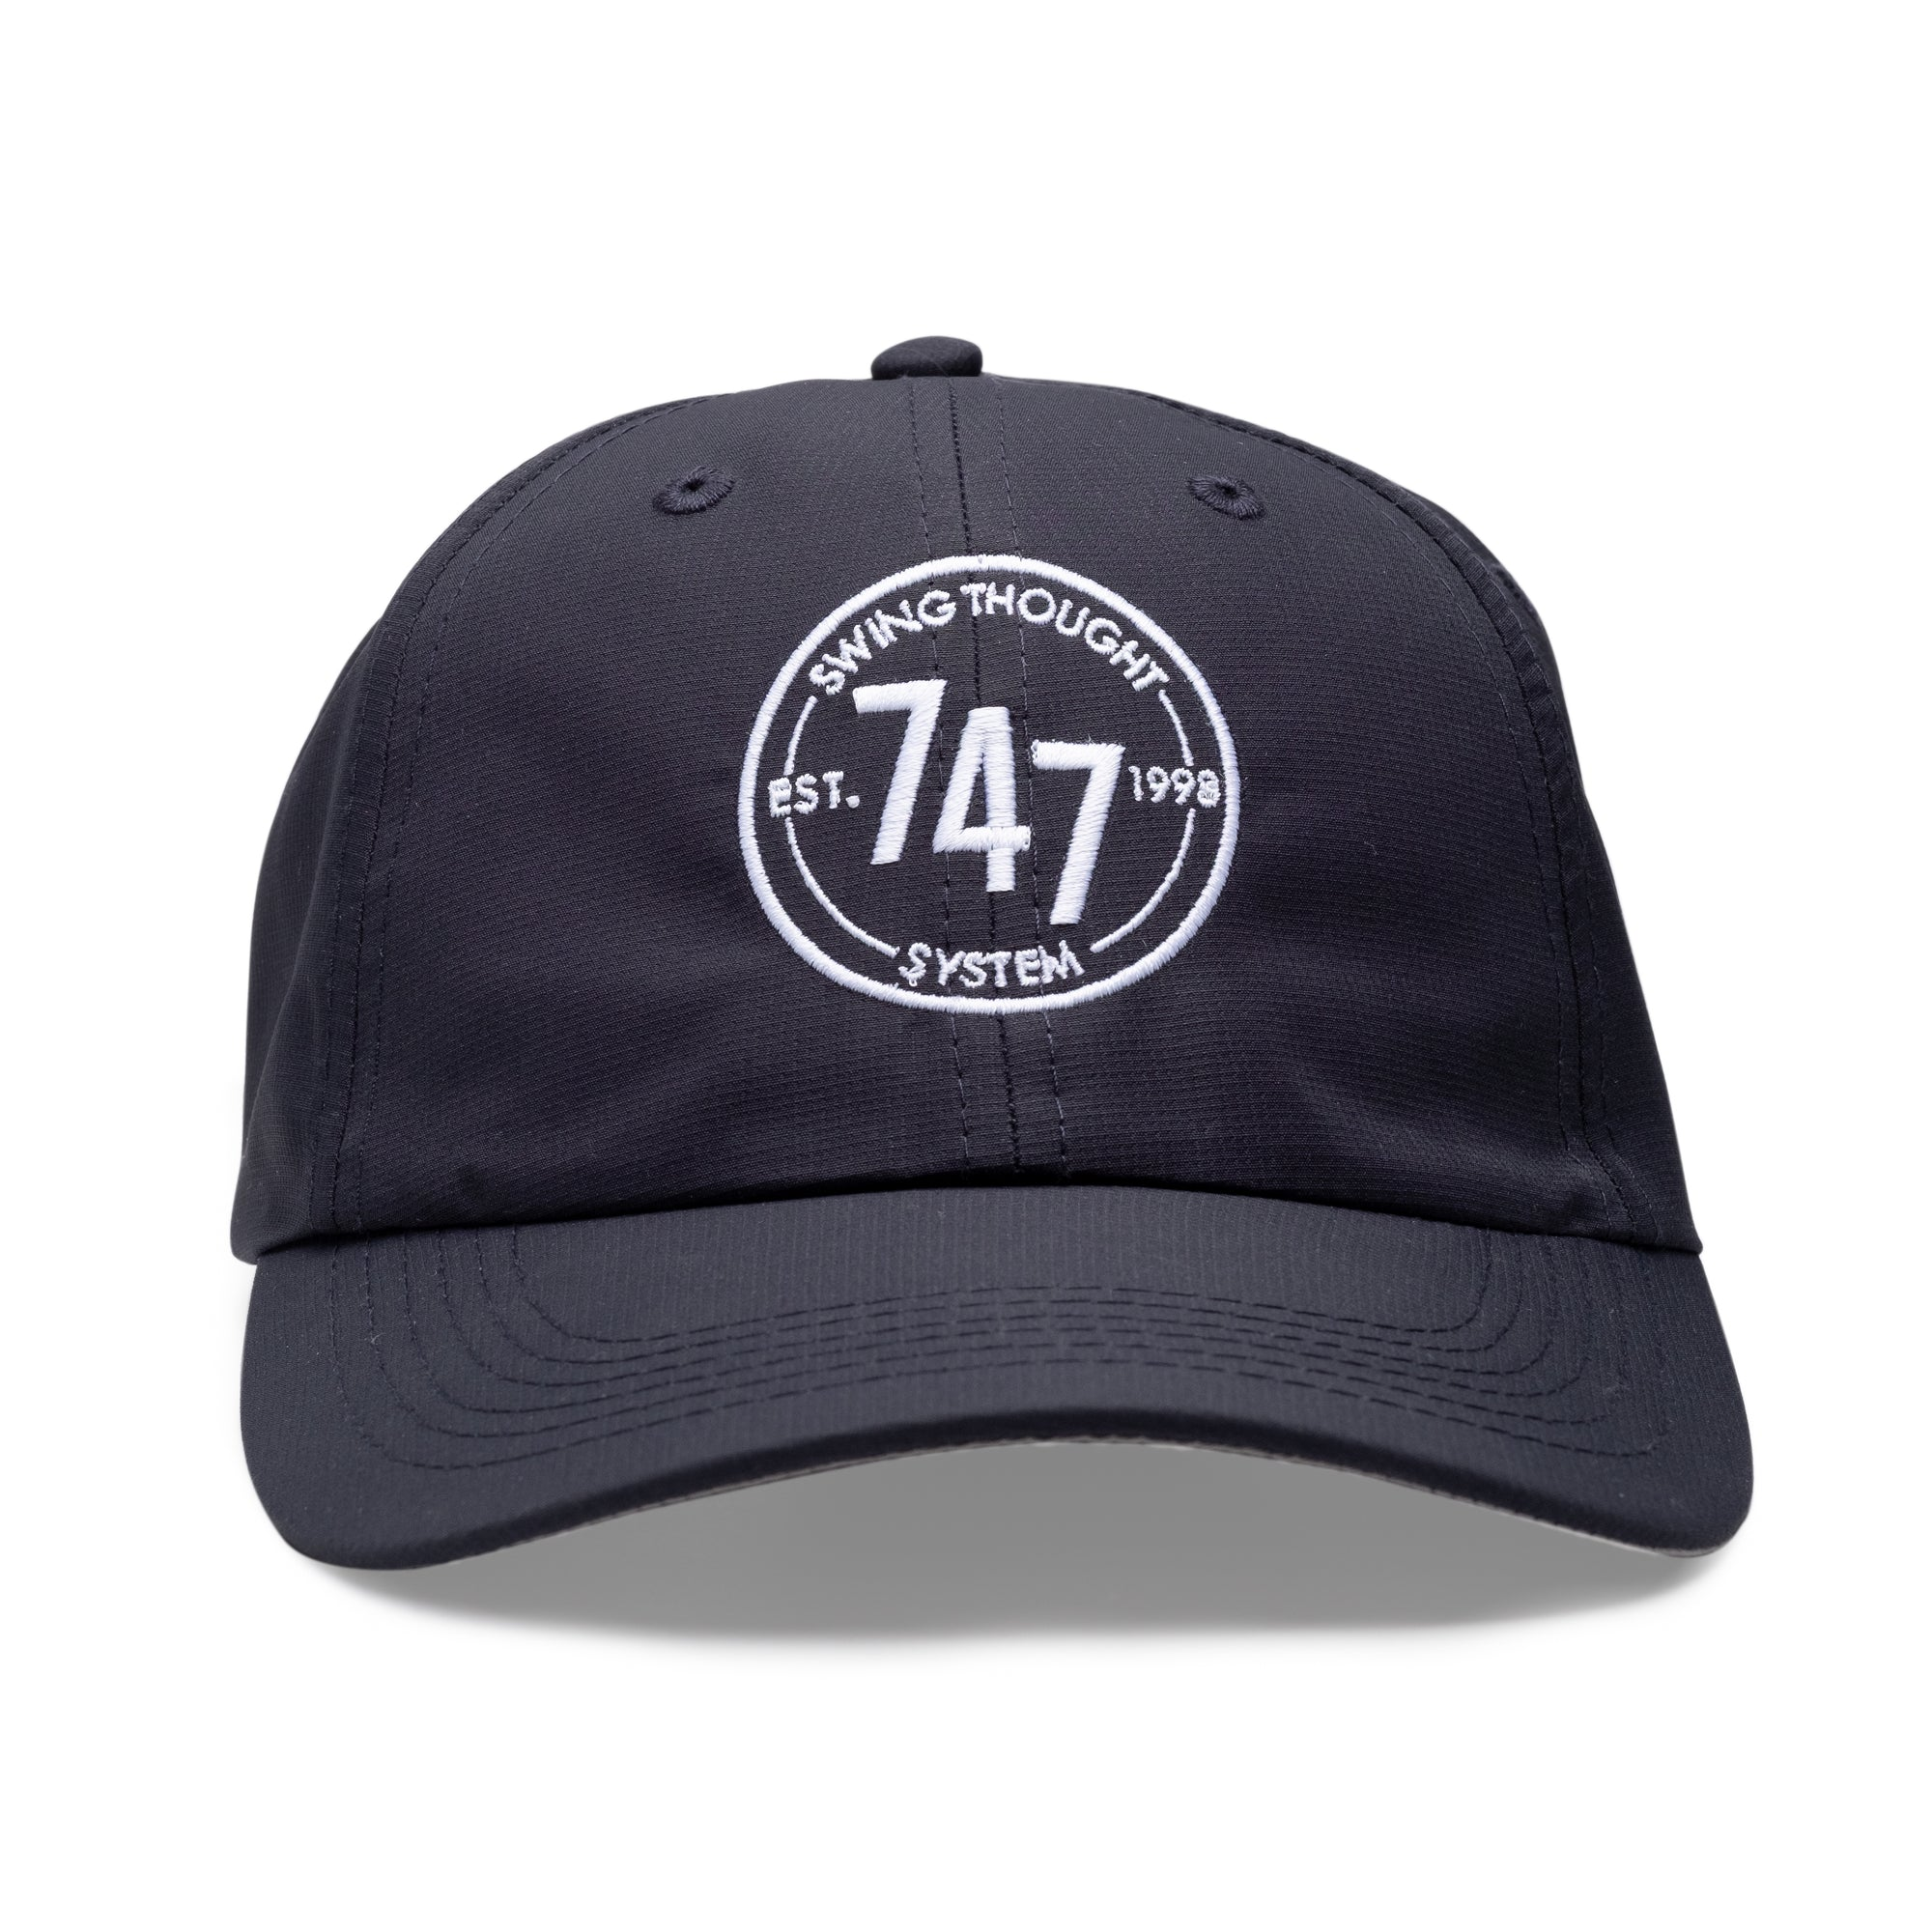 7bbb9d09f71 7-4-7 Unstructured Hat - Navy - Club Pro Guy